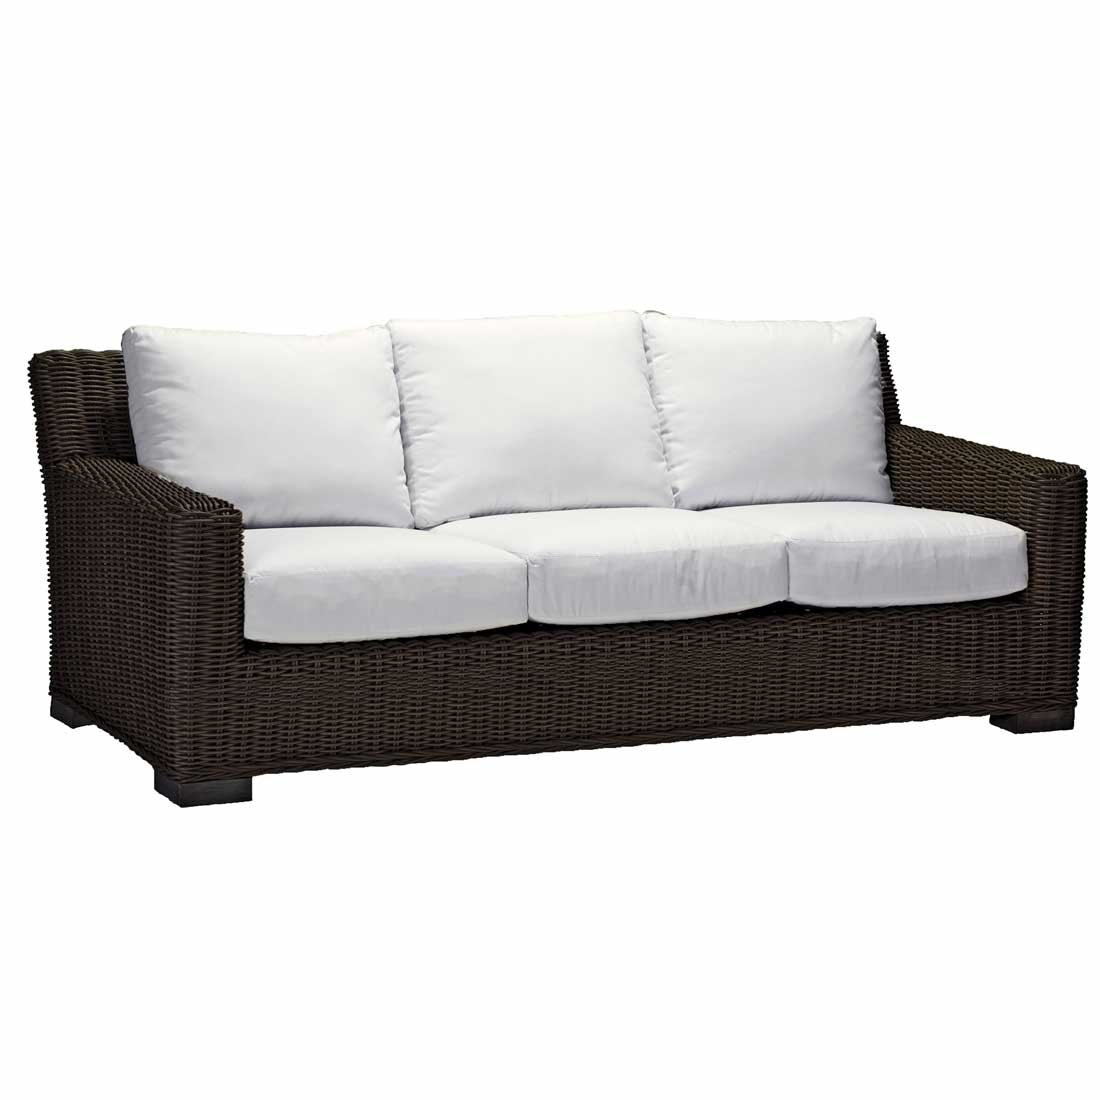 Summer Classics Outdoor/Patio Rustic Sofa 37452   Birmingham Wholesale  Furniture   Birmingham, AL